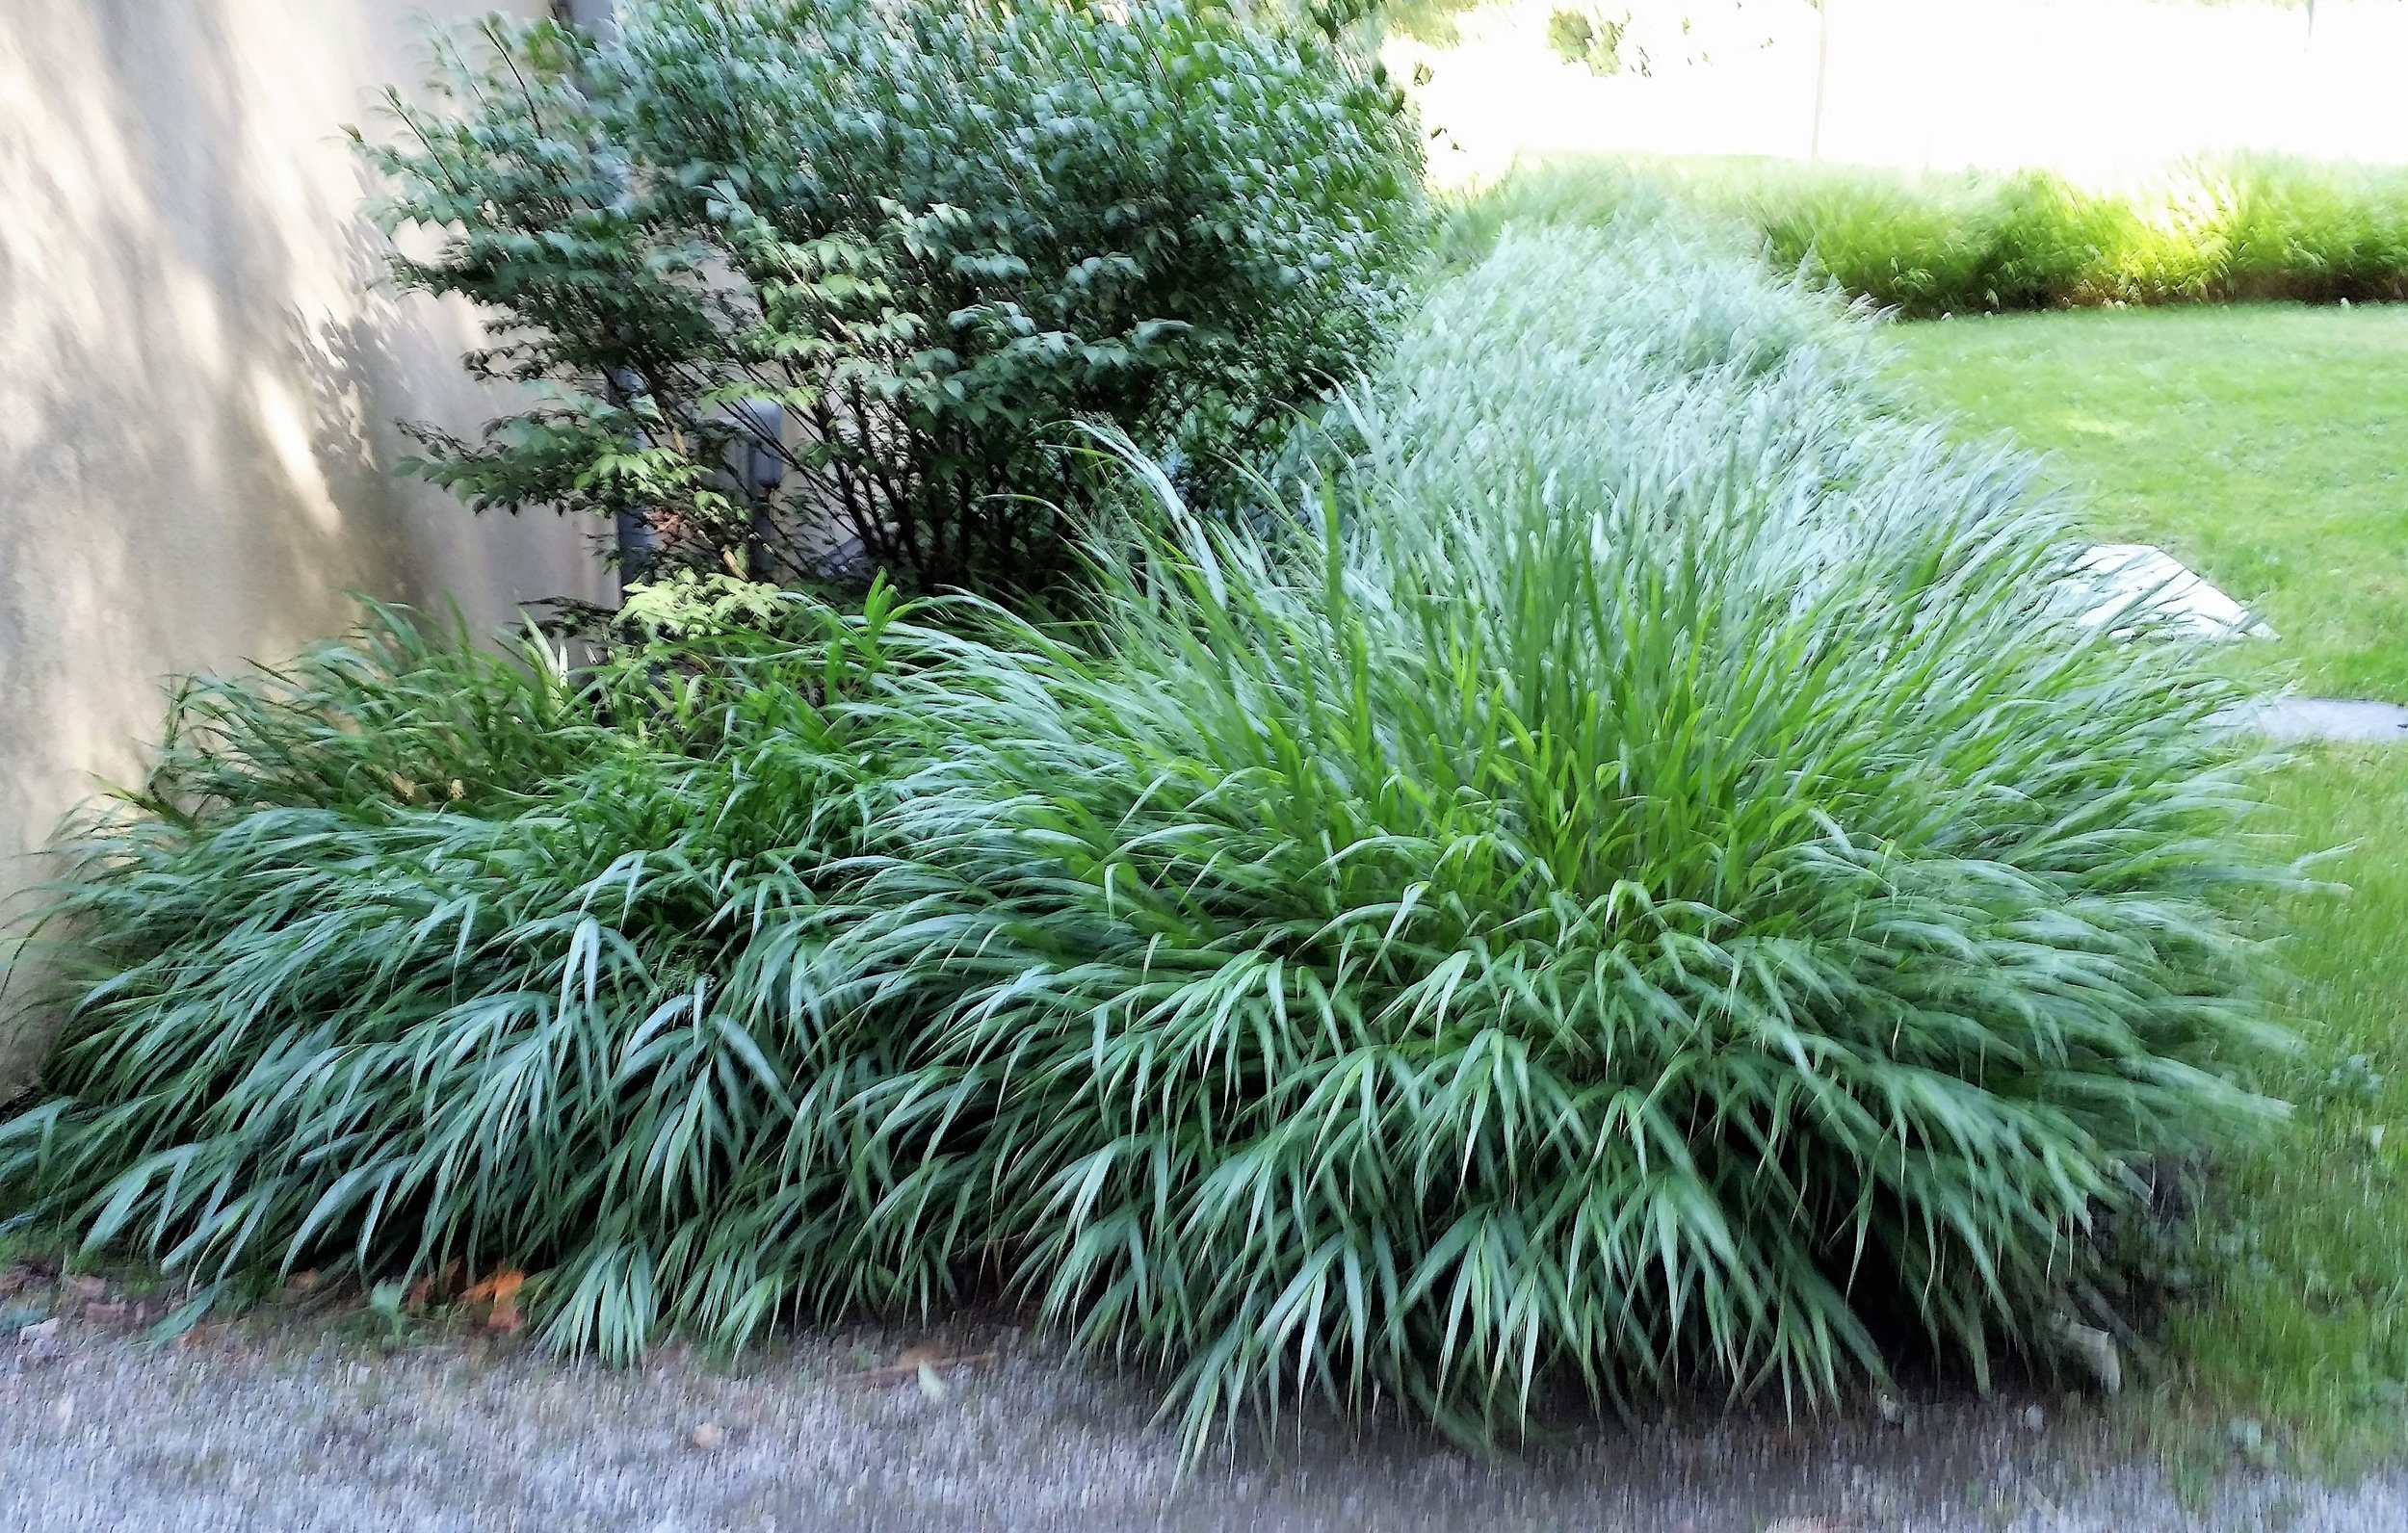 Forest grass outside the Entry Courtyard (Corinne Kennedy, 9/22/17)